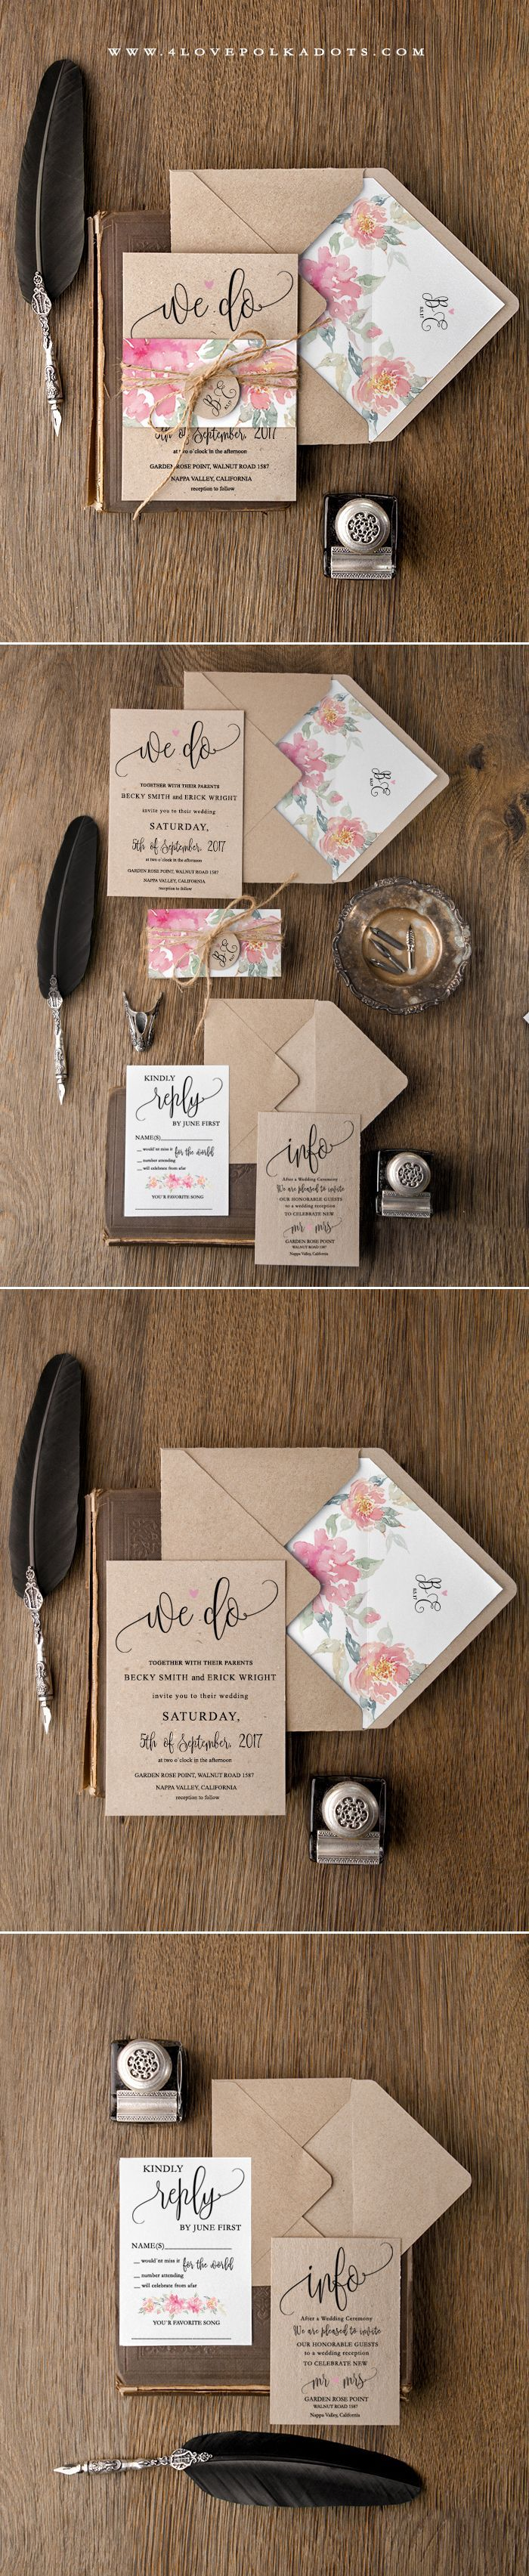 Message in a bottle wedding invitations durban accommodation ...